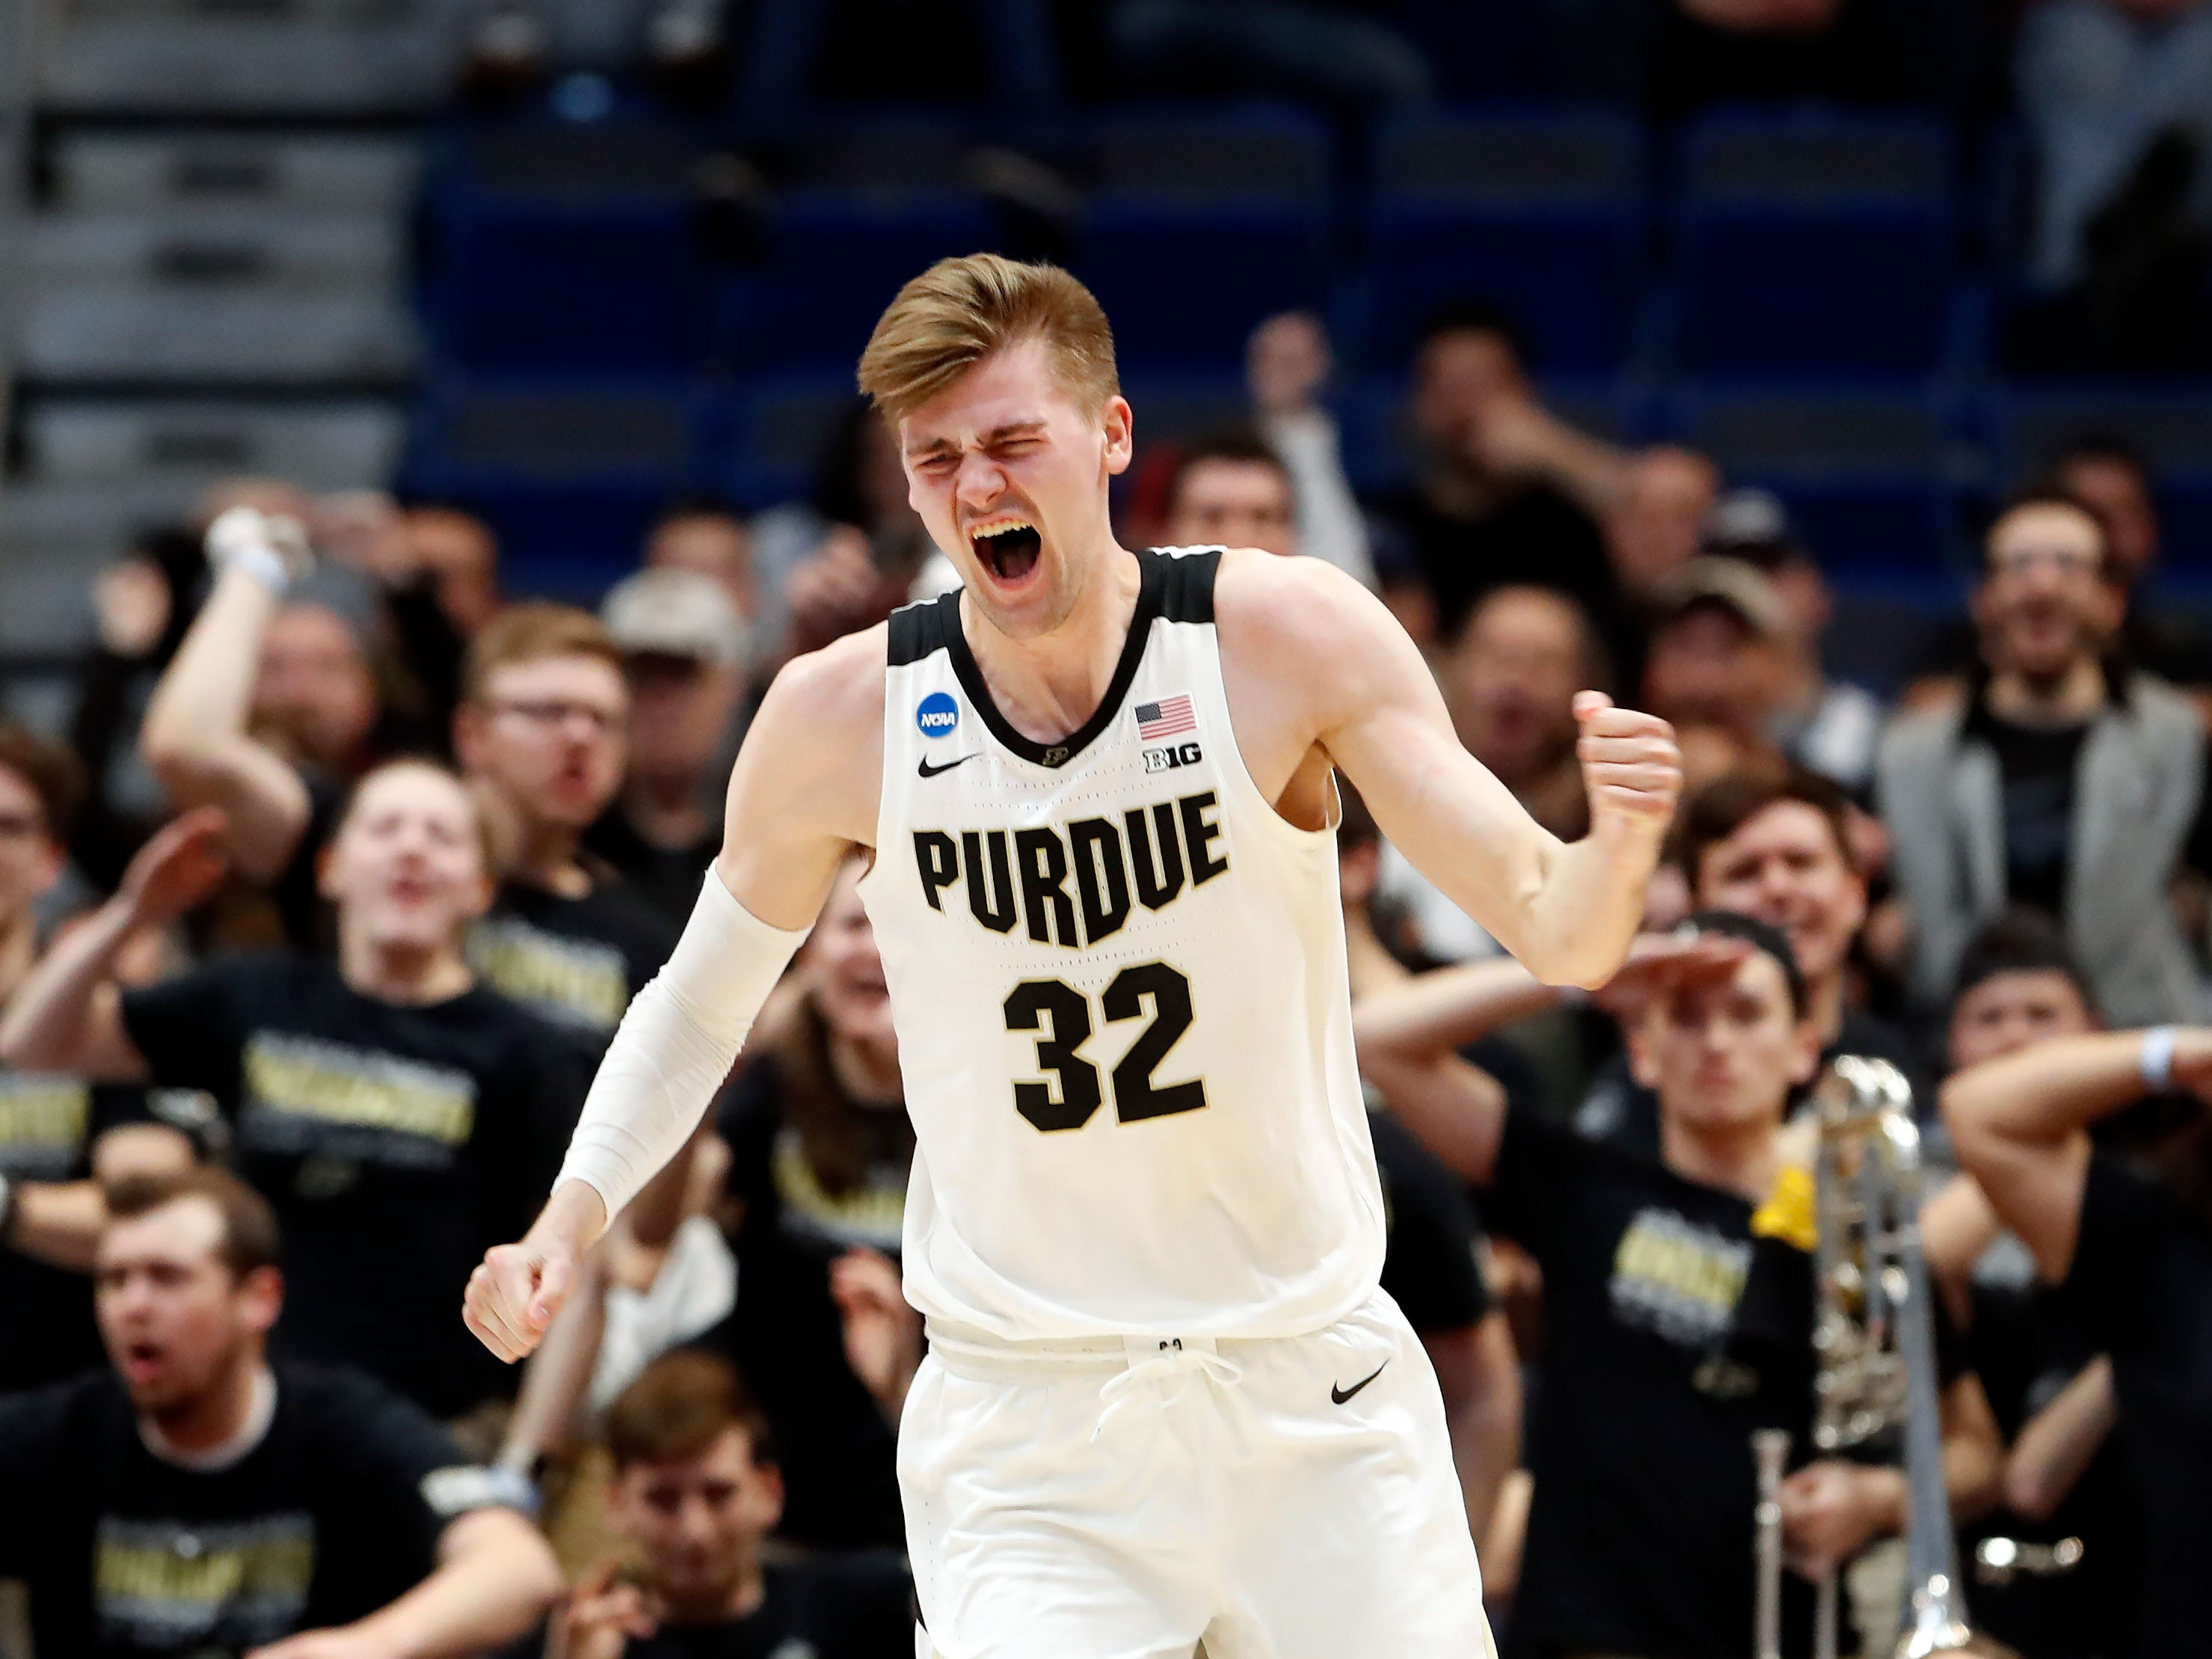 Mar 21, 2019; Hartford, CT, USA; Purdue Boilermakers center Matt Haarms (32) reacts after a score against the Old Dominion Monarchs during the second half of a game in the first round of the 2019 NCAA Tournament at XL Center. Mandatory Credit: David Butler II-USA TODAY Sports